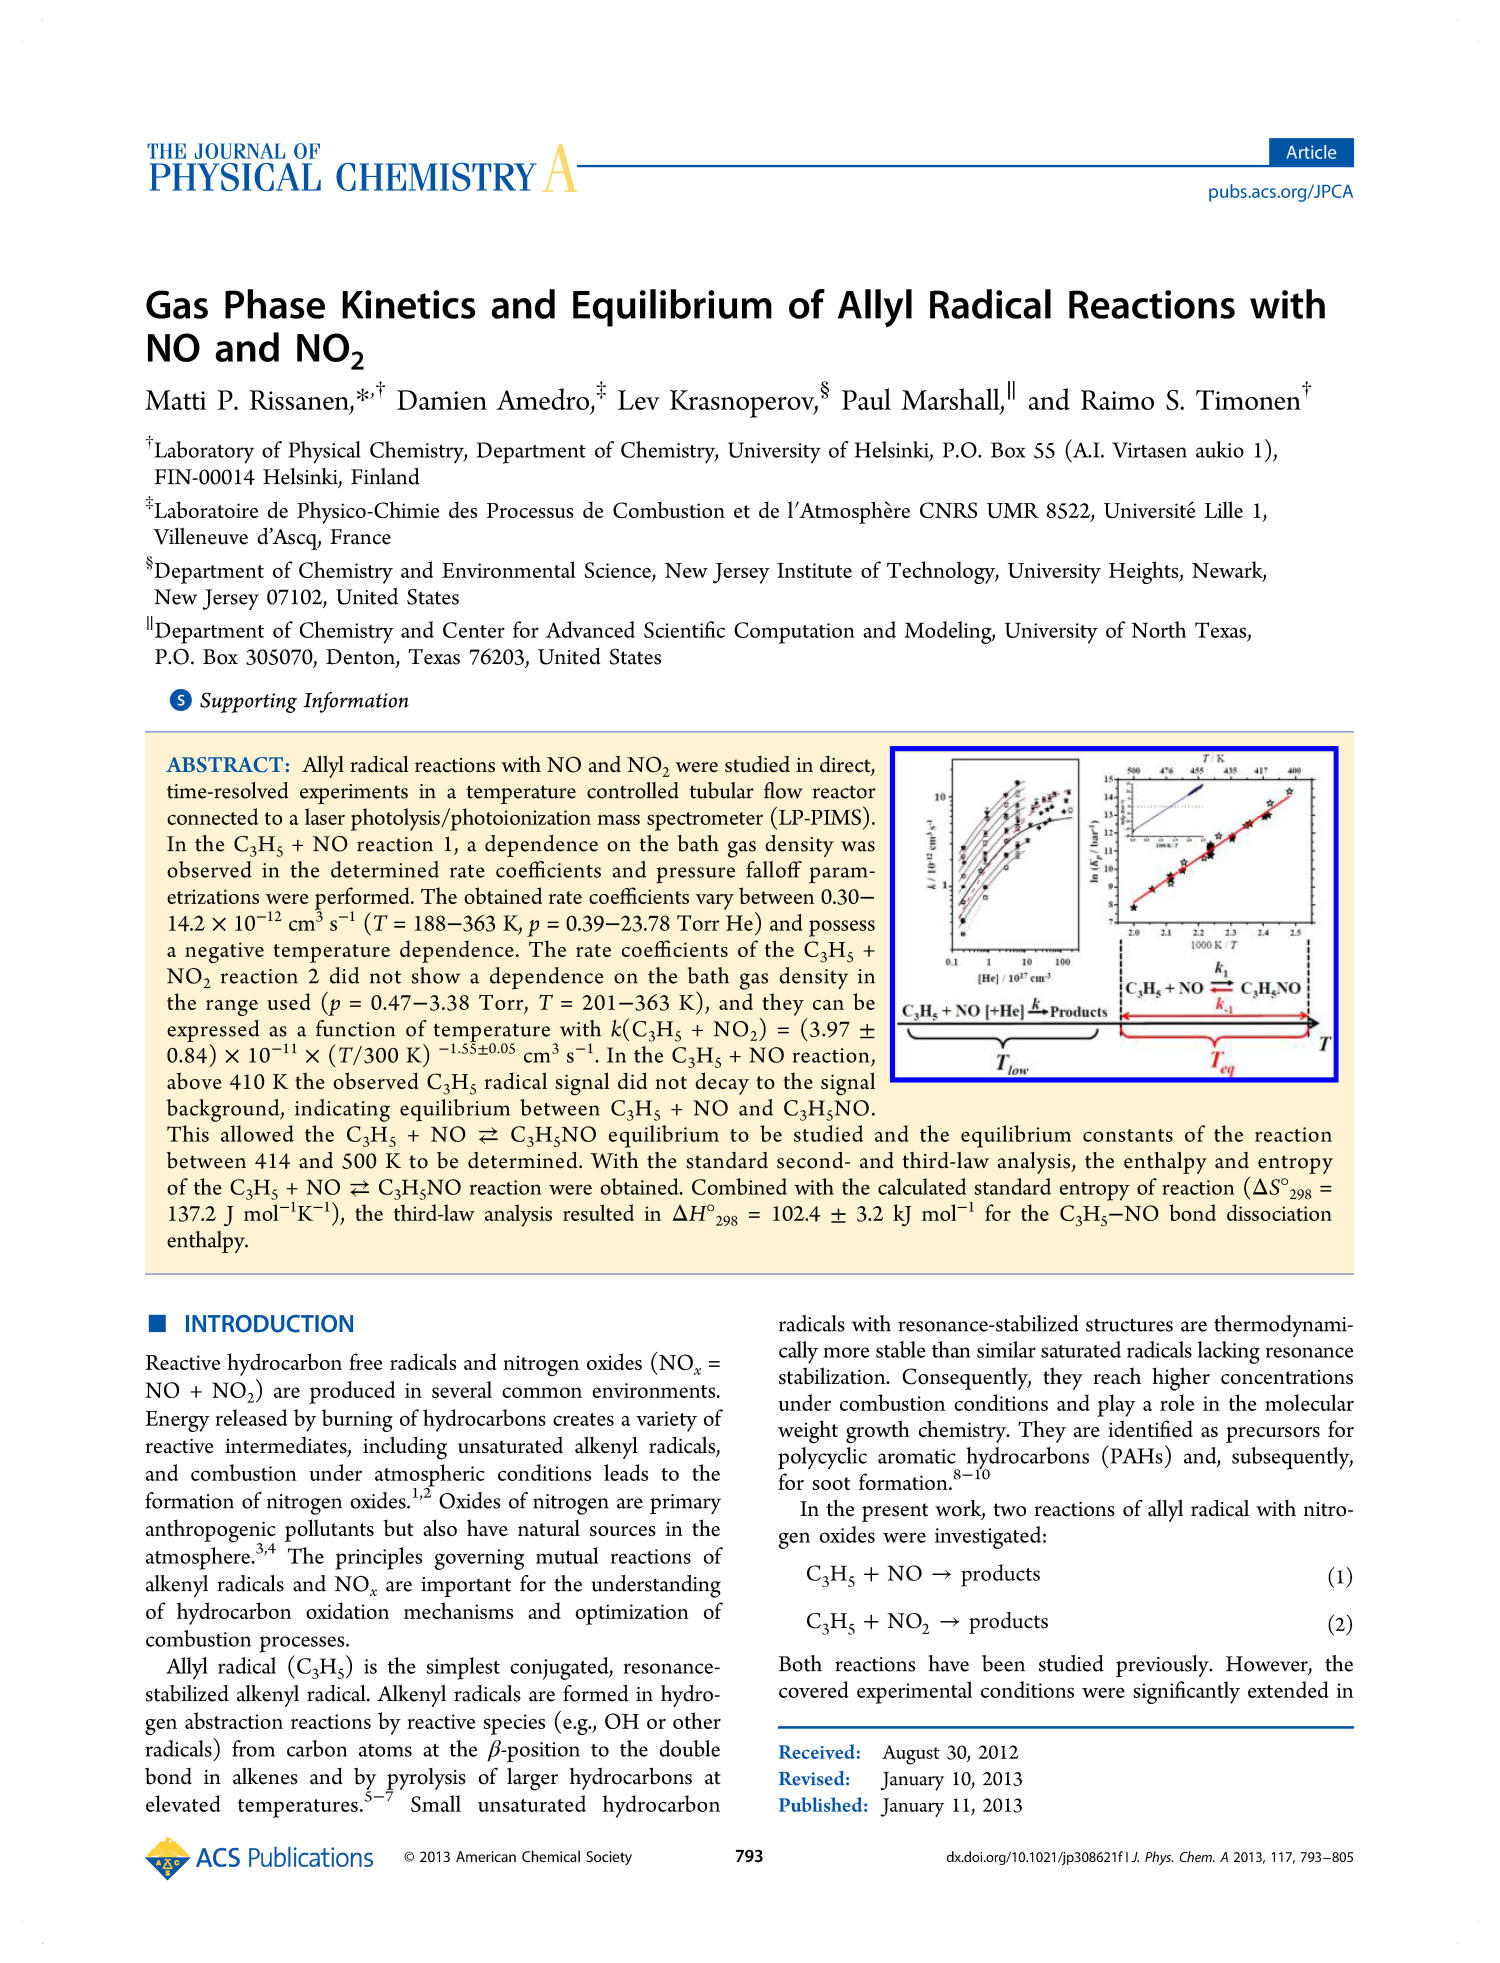 Gas Phase Kinetics and Equilibrium of Allyl Radical Reactions with NO and NO₂                                                                                                      793